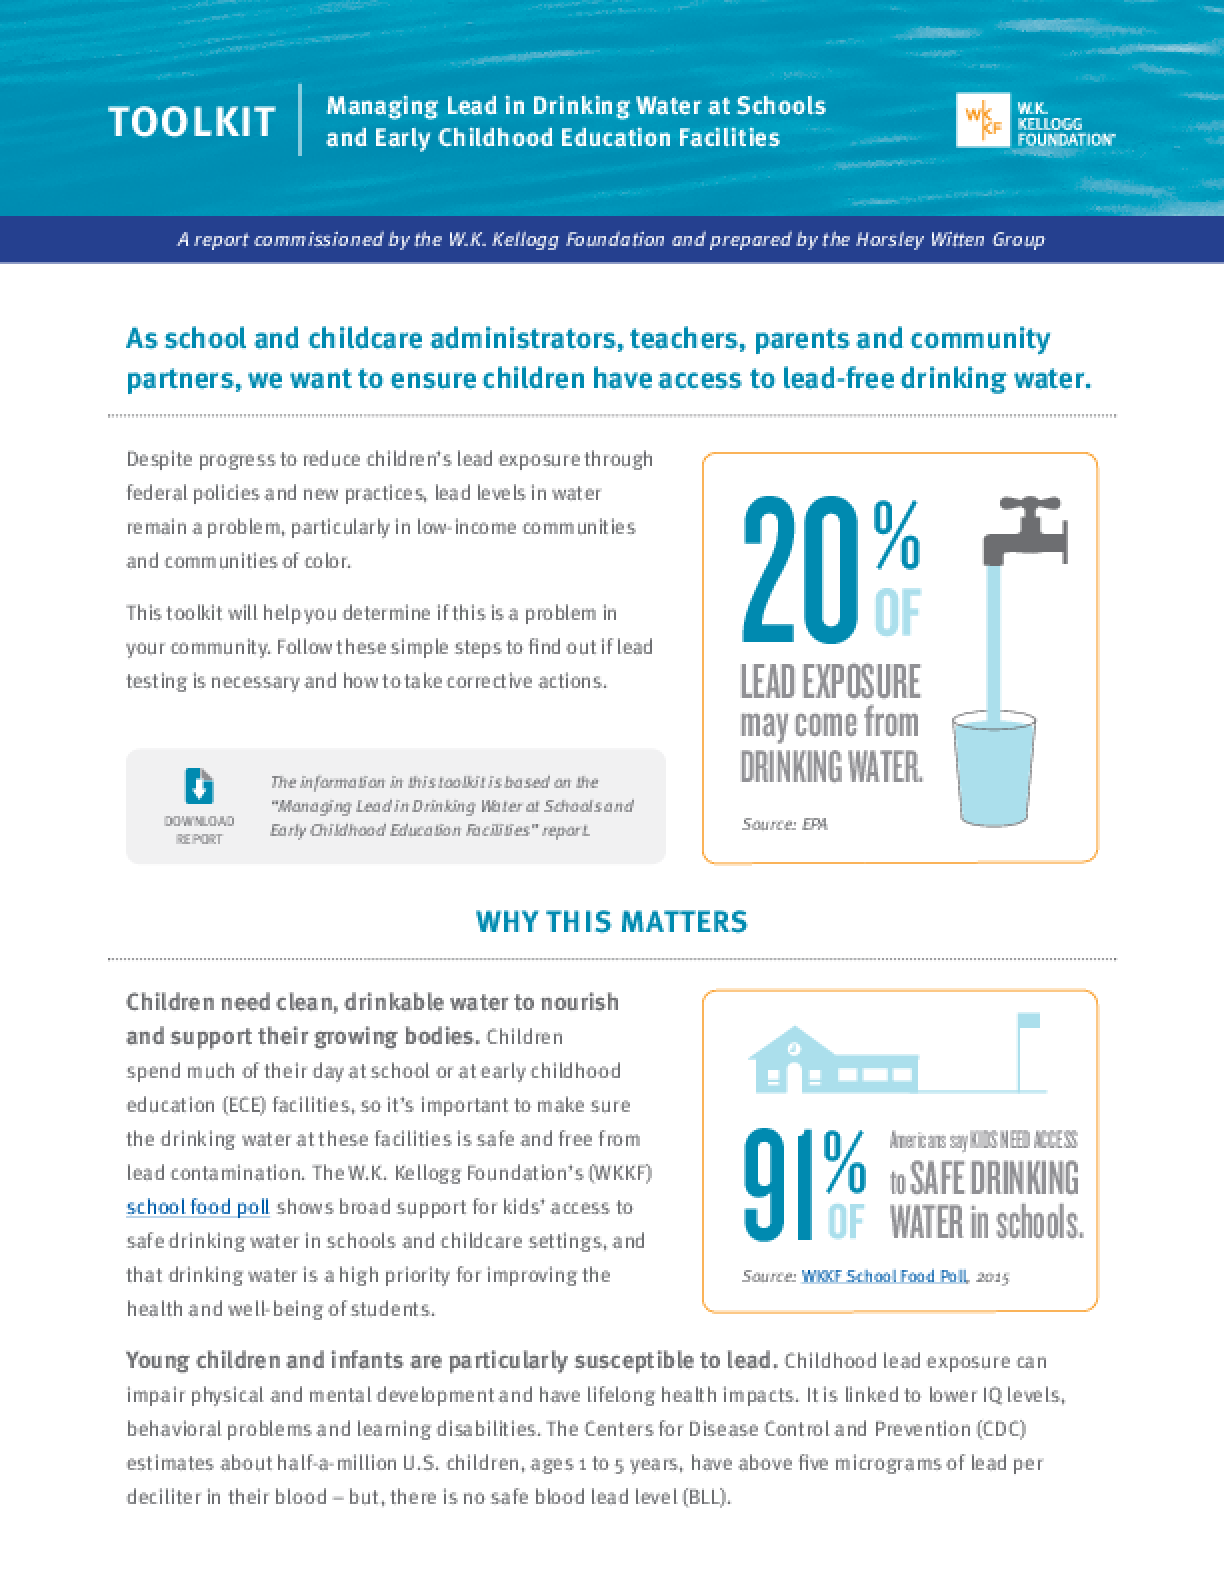 Toolkit - Managing Lead in Drinking Water at Schools and Early Childhood Education Facilities